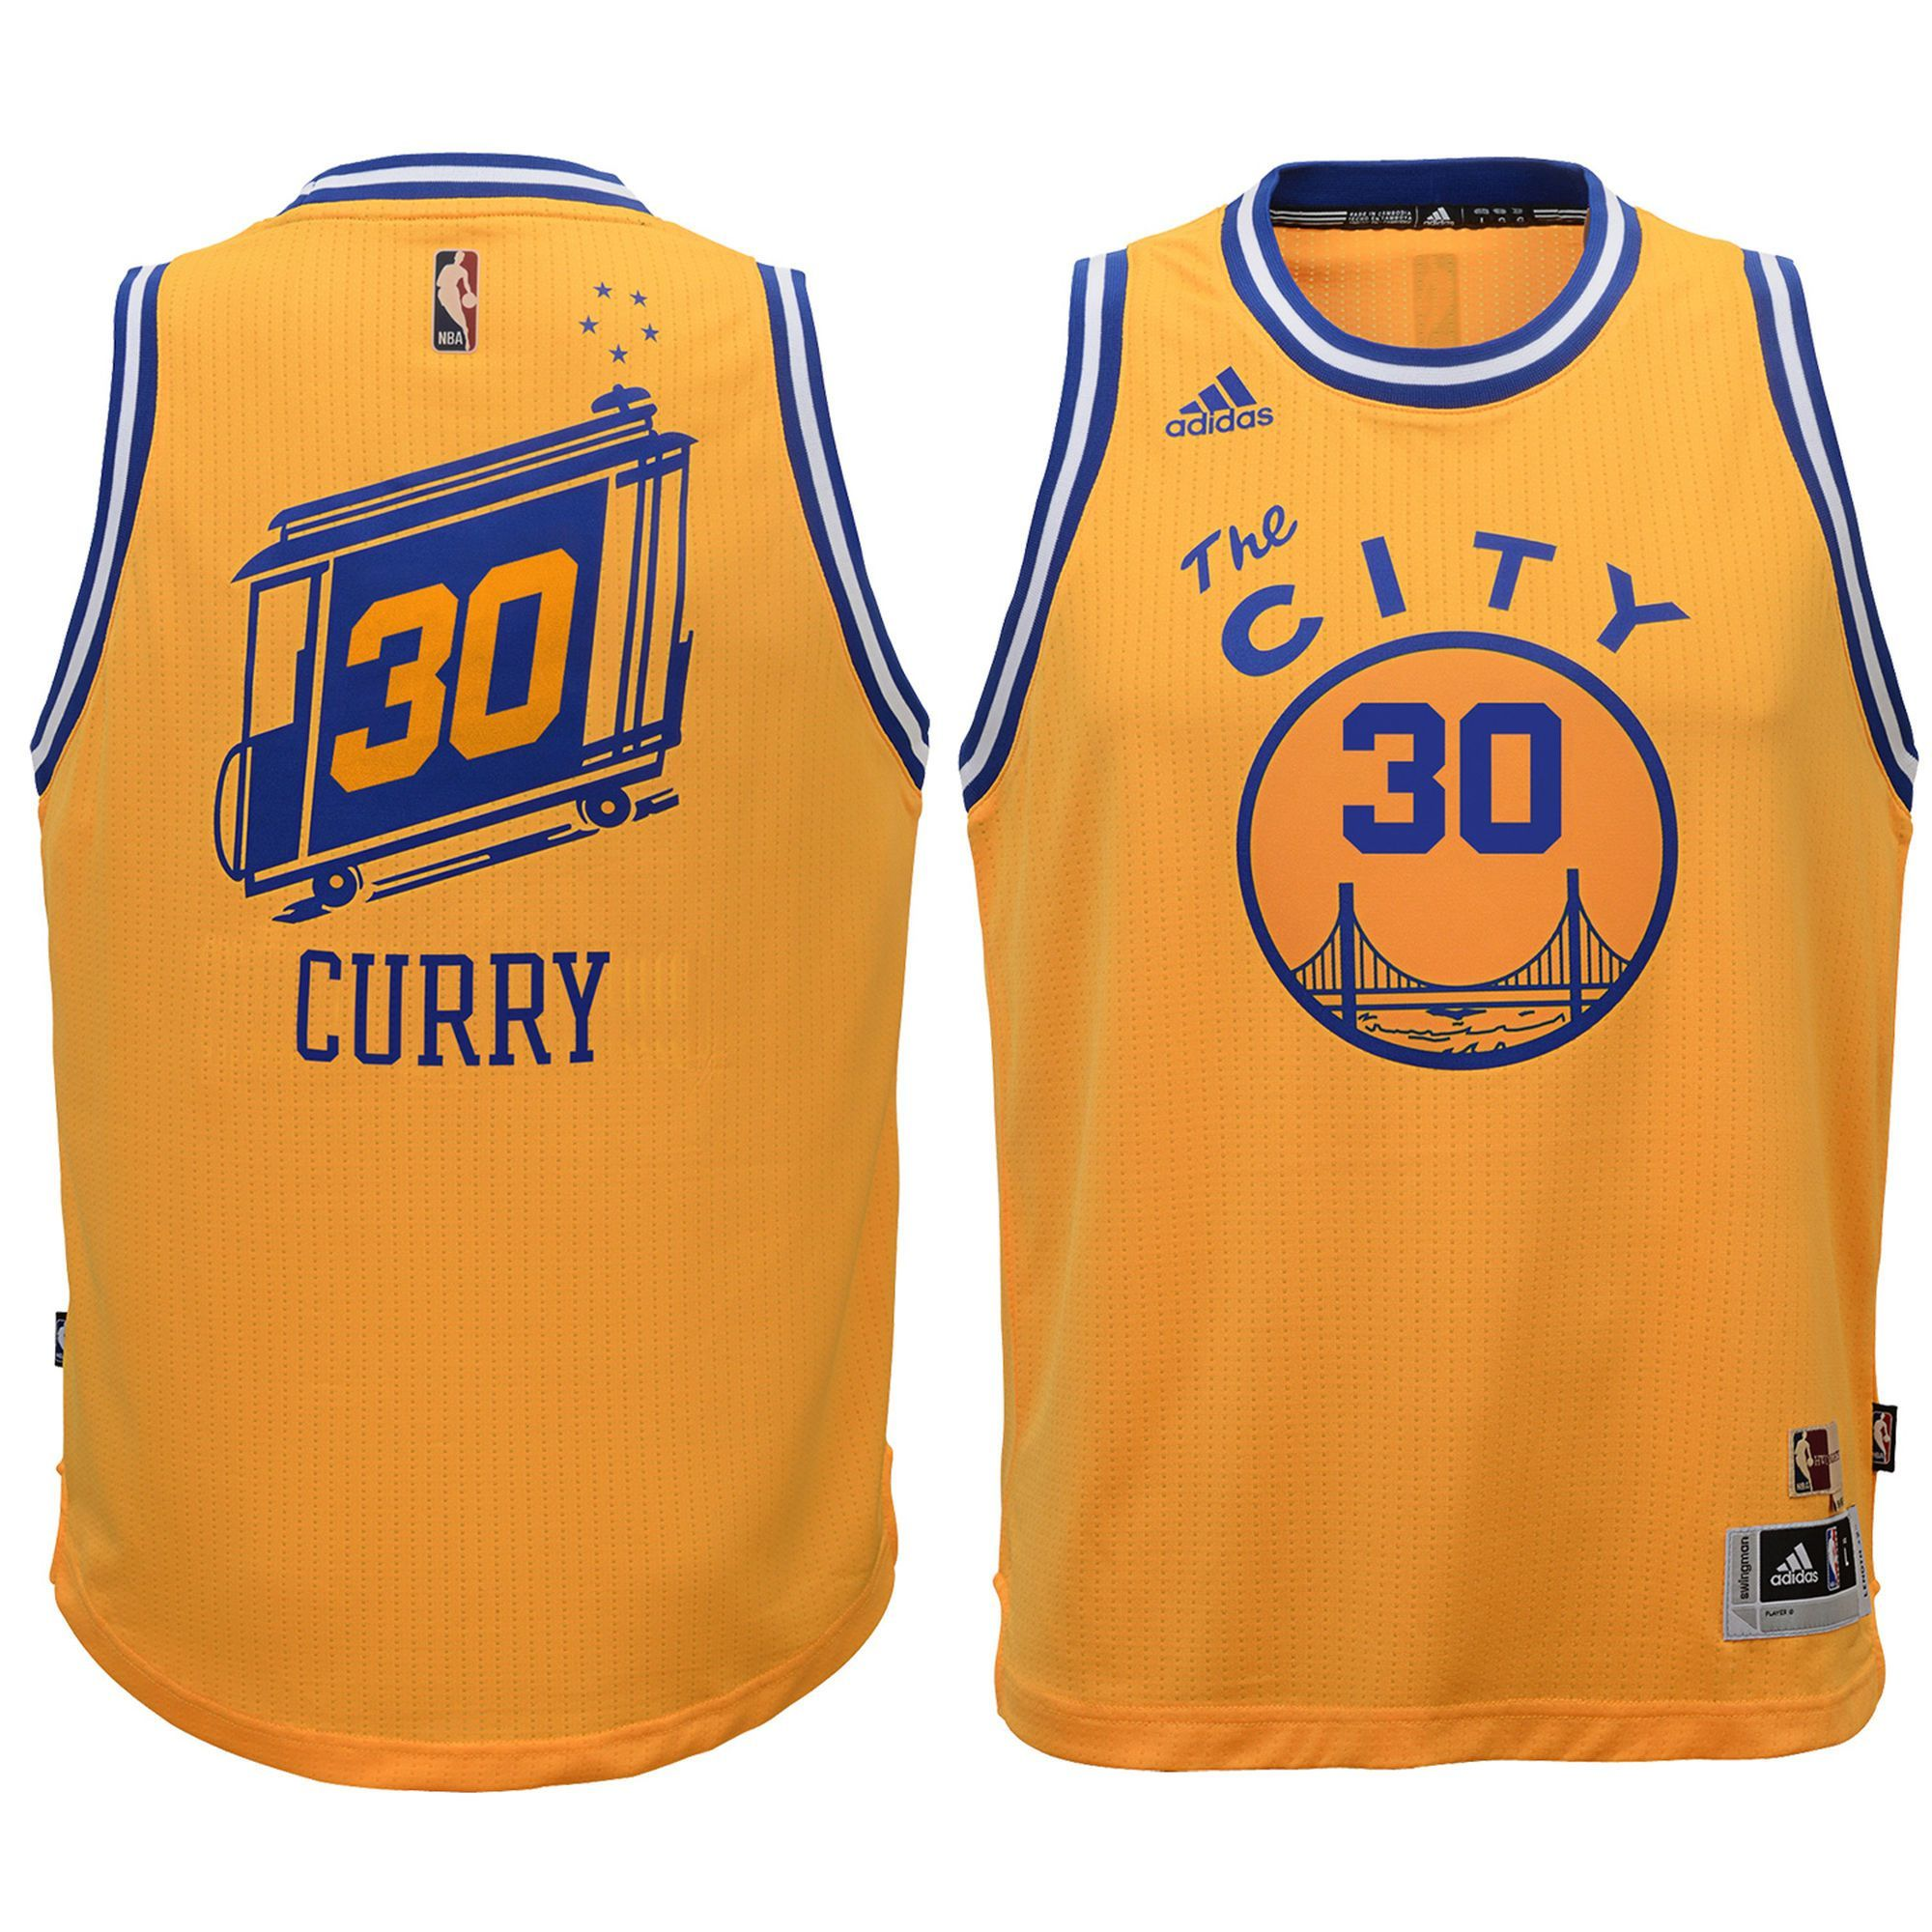 e6c8c9c043b Stephen Curry #30 Golden State Warriors Hardwood Classic Swingman Jersey -  Gold